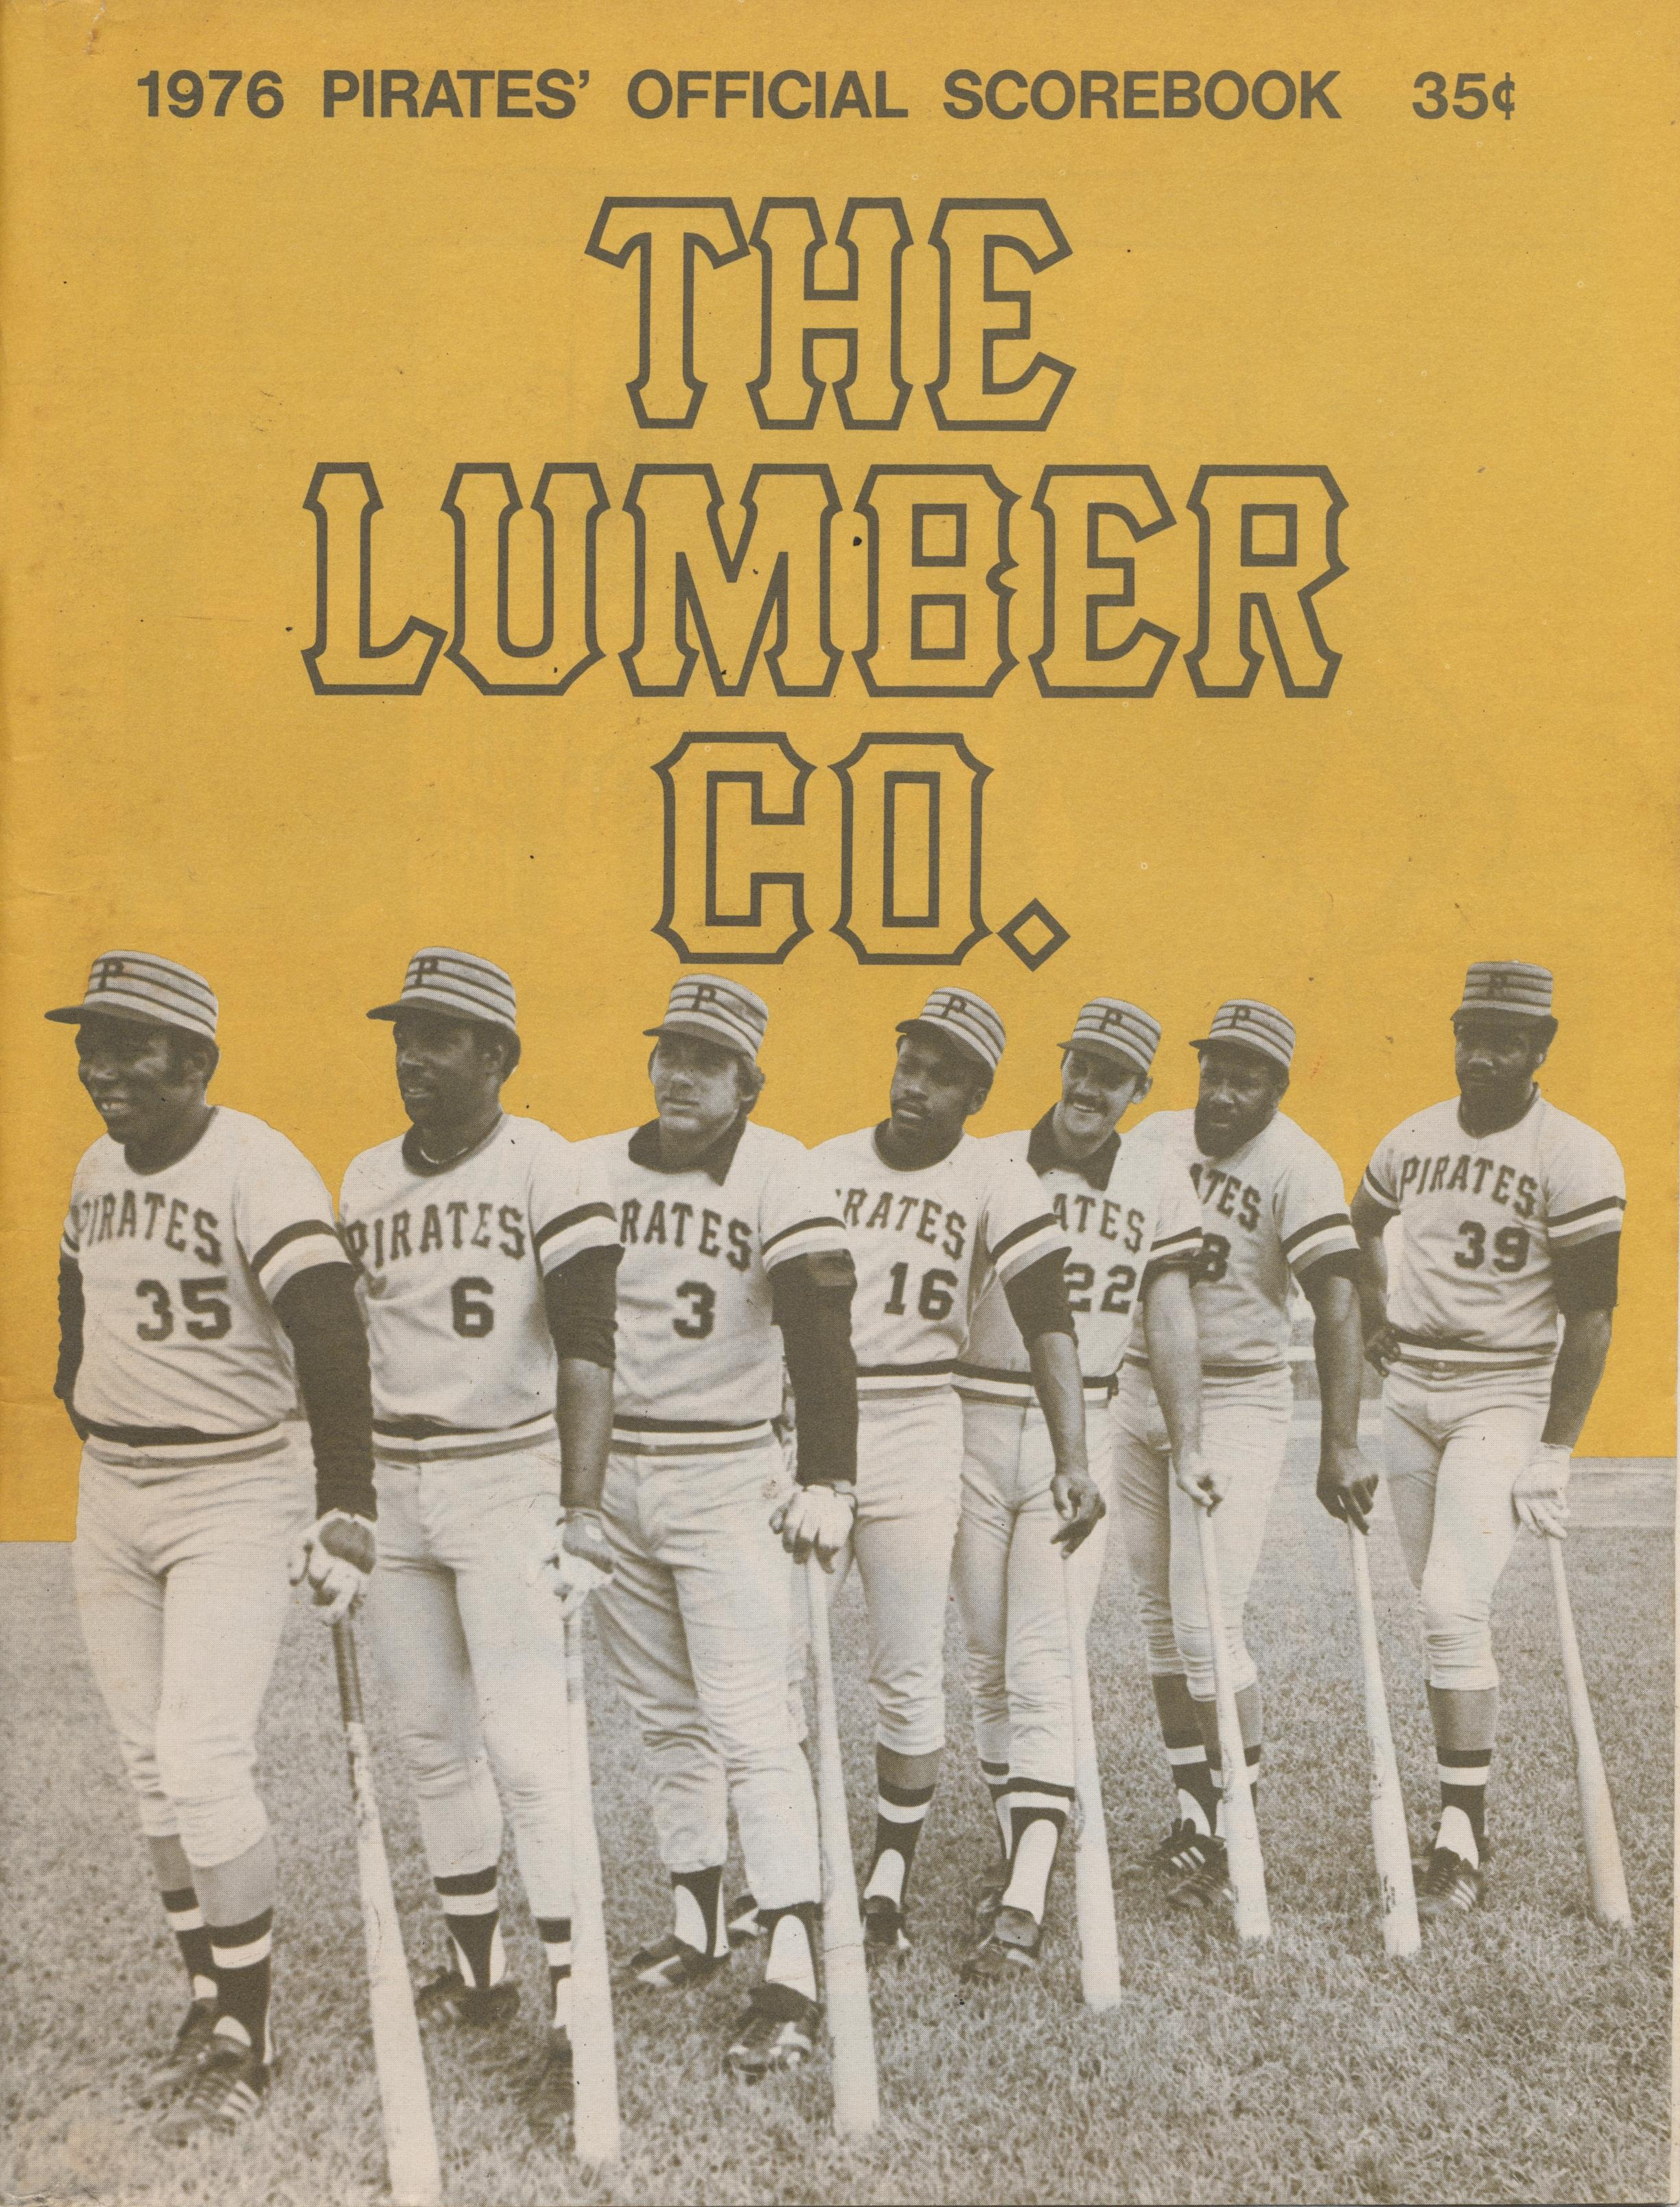 1976 Pirates Official Scorebook - The Lumber Co.